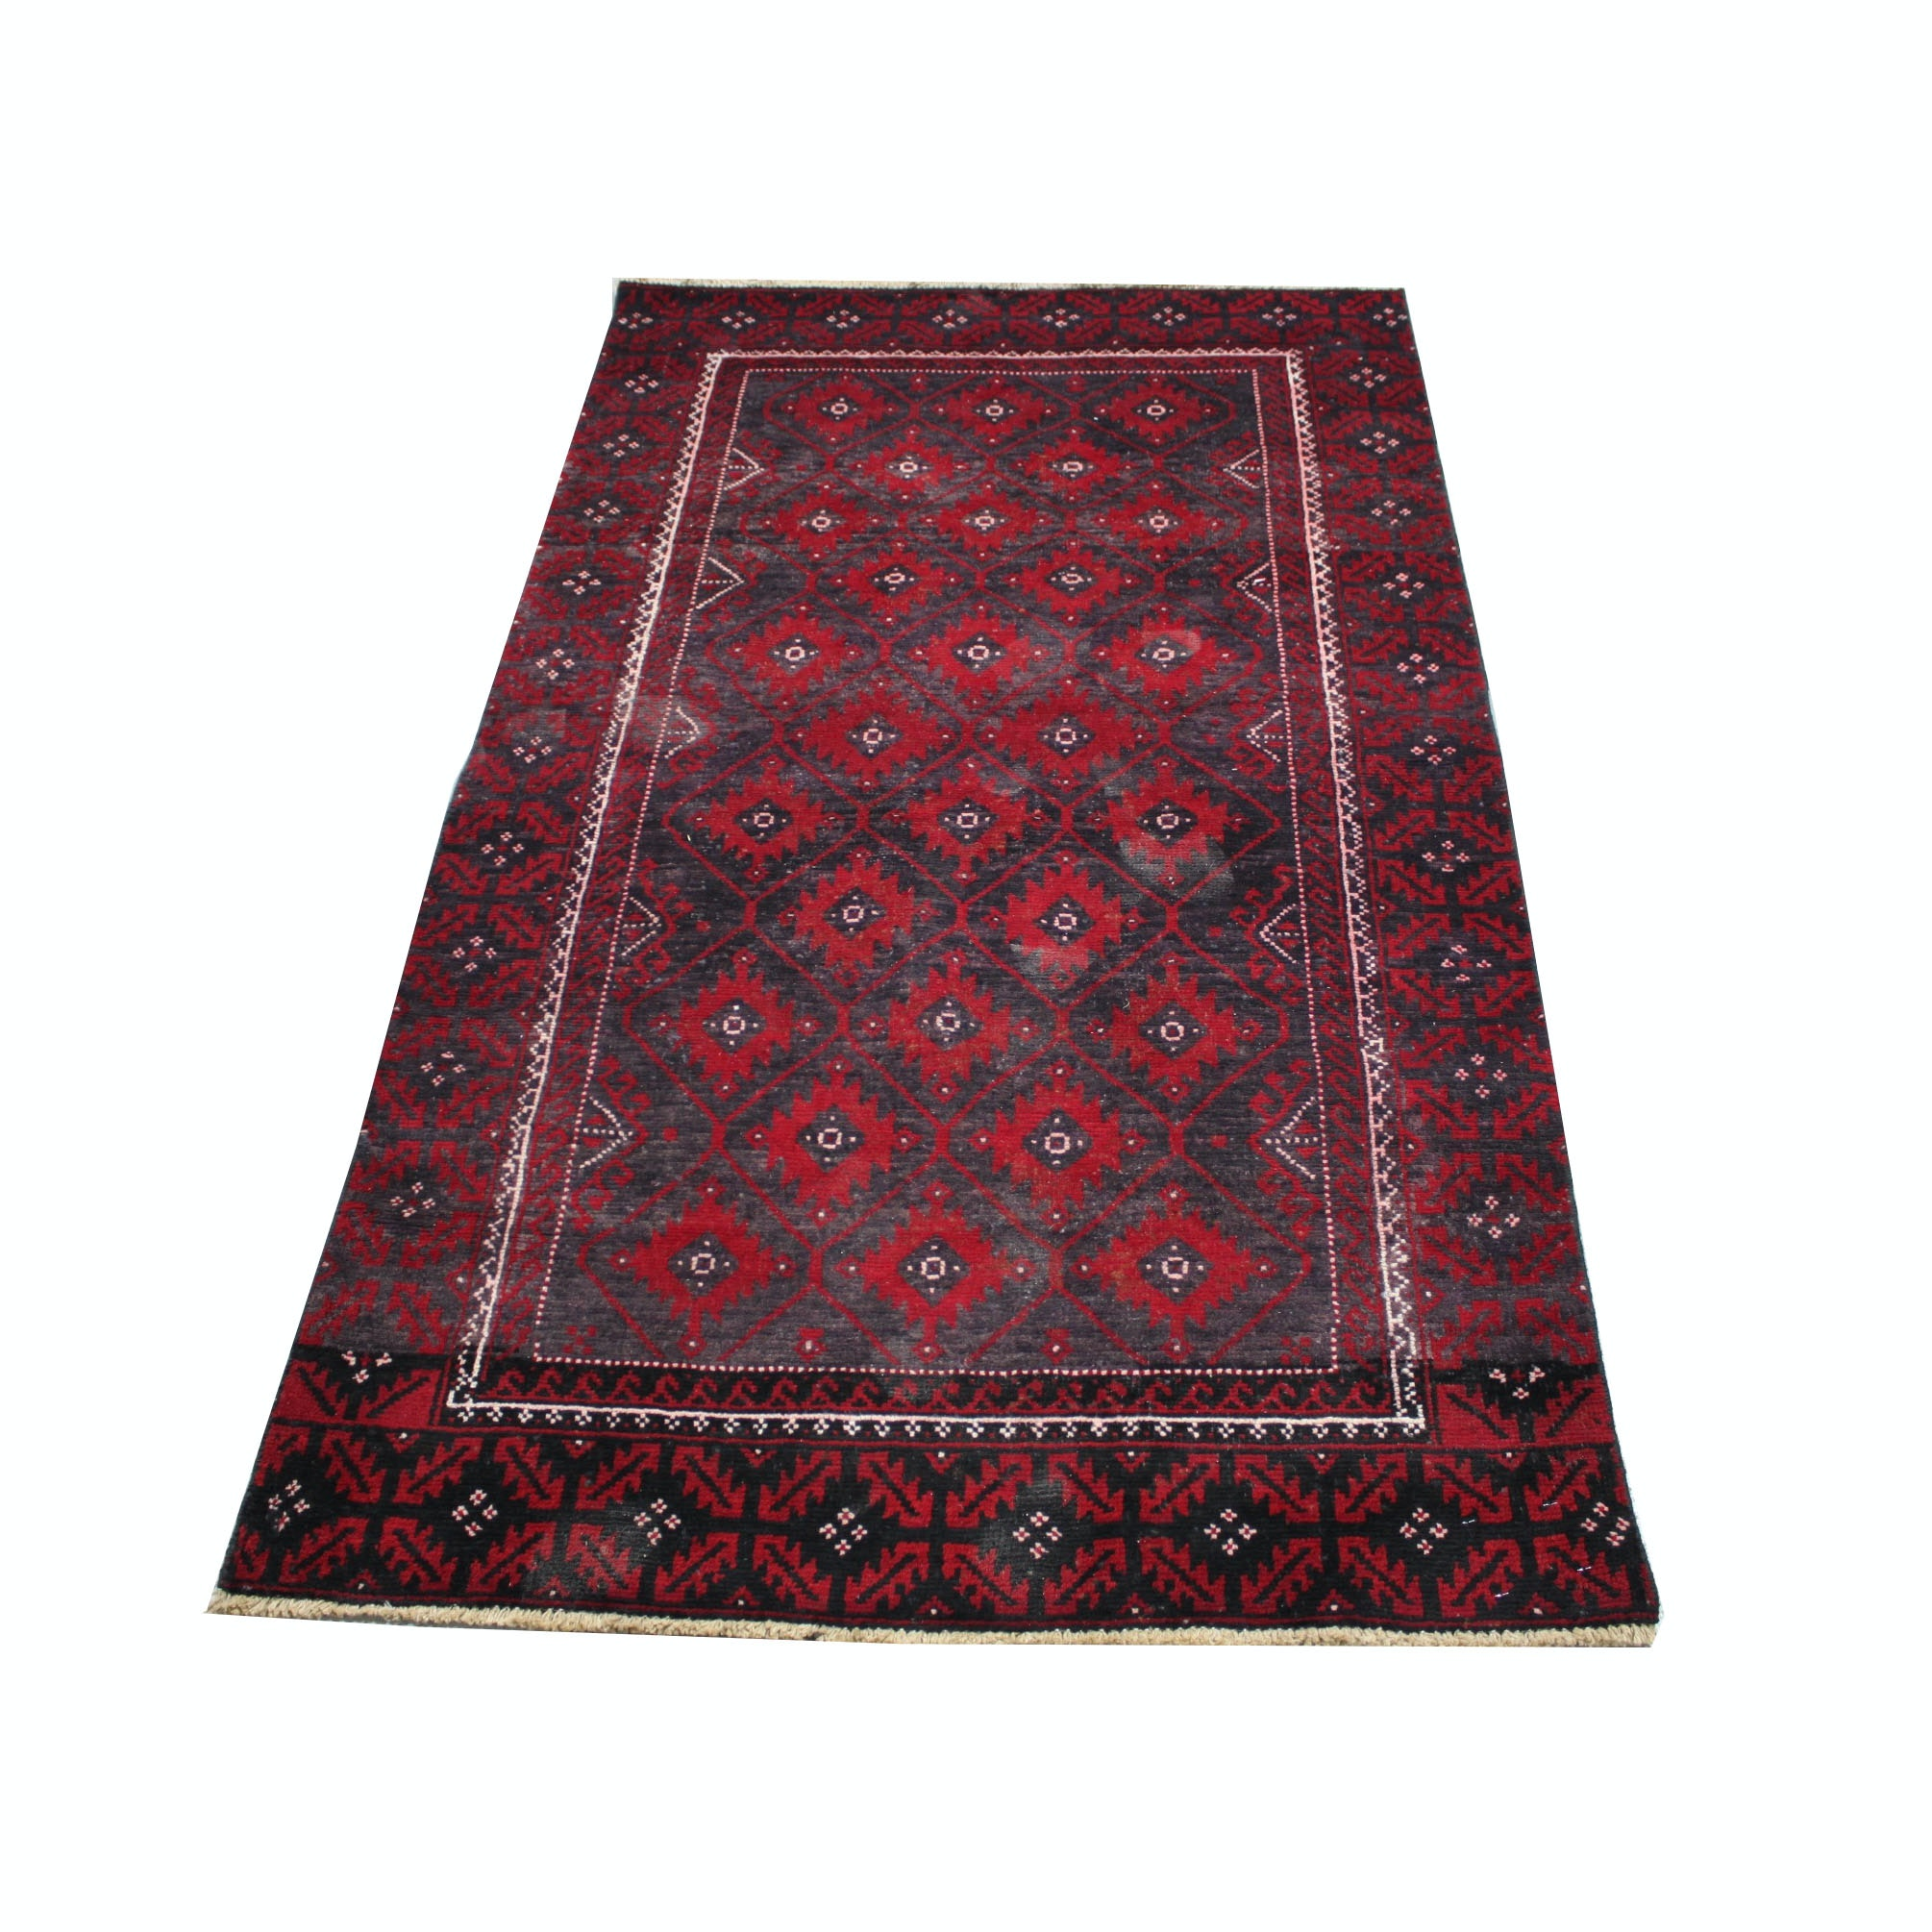 Hand-Knotted Persian Turkmen Area Rug